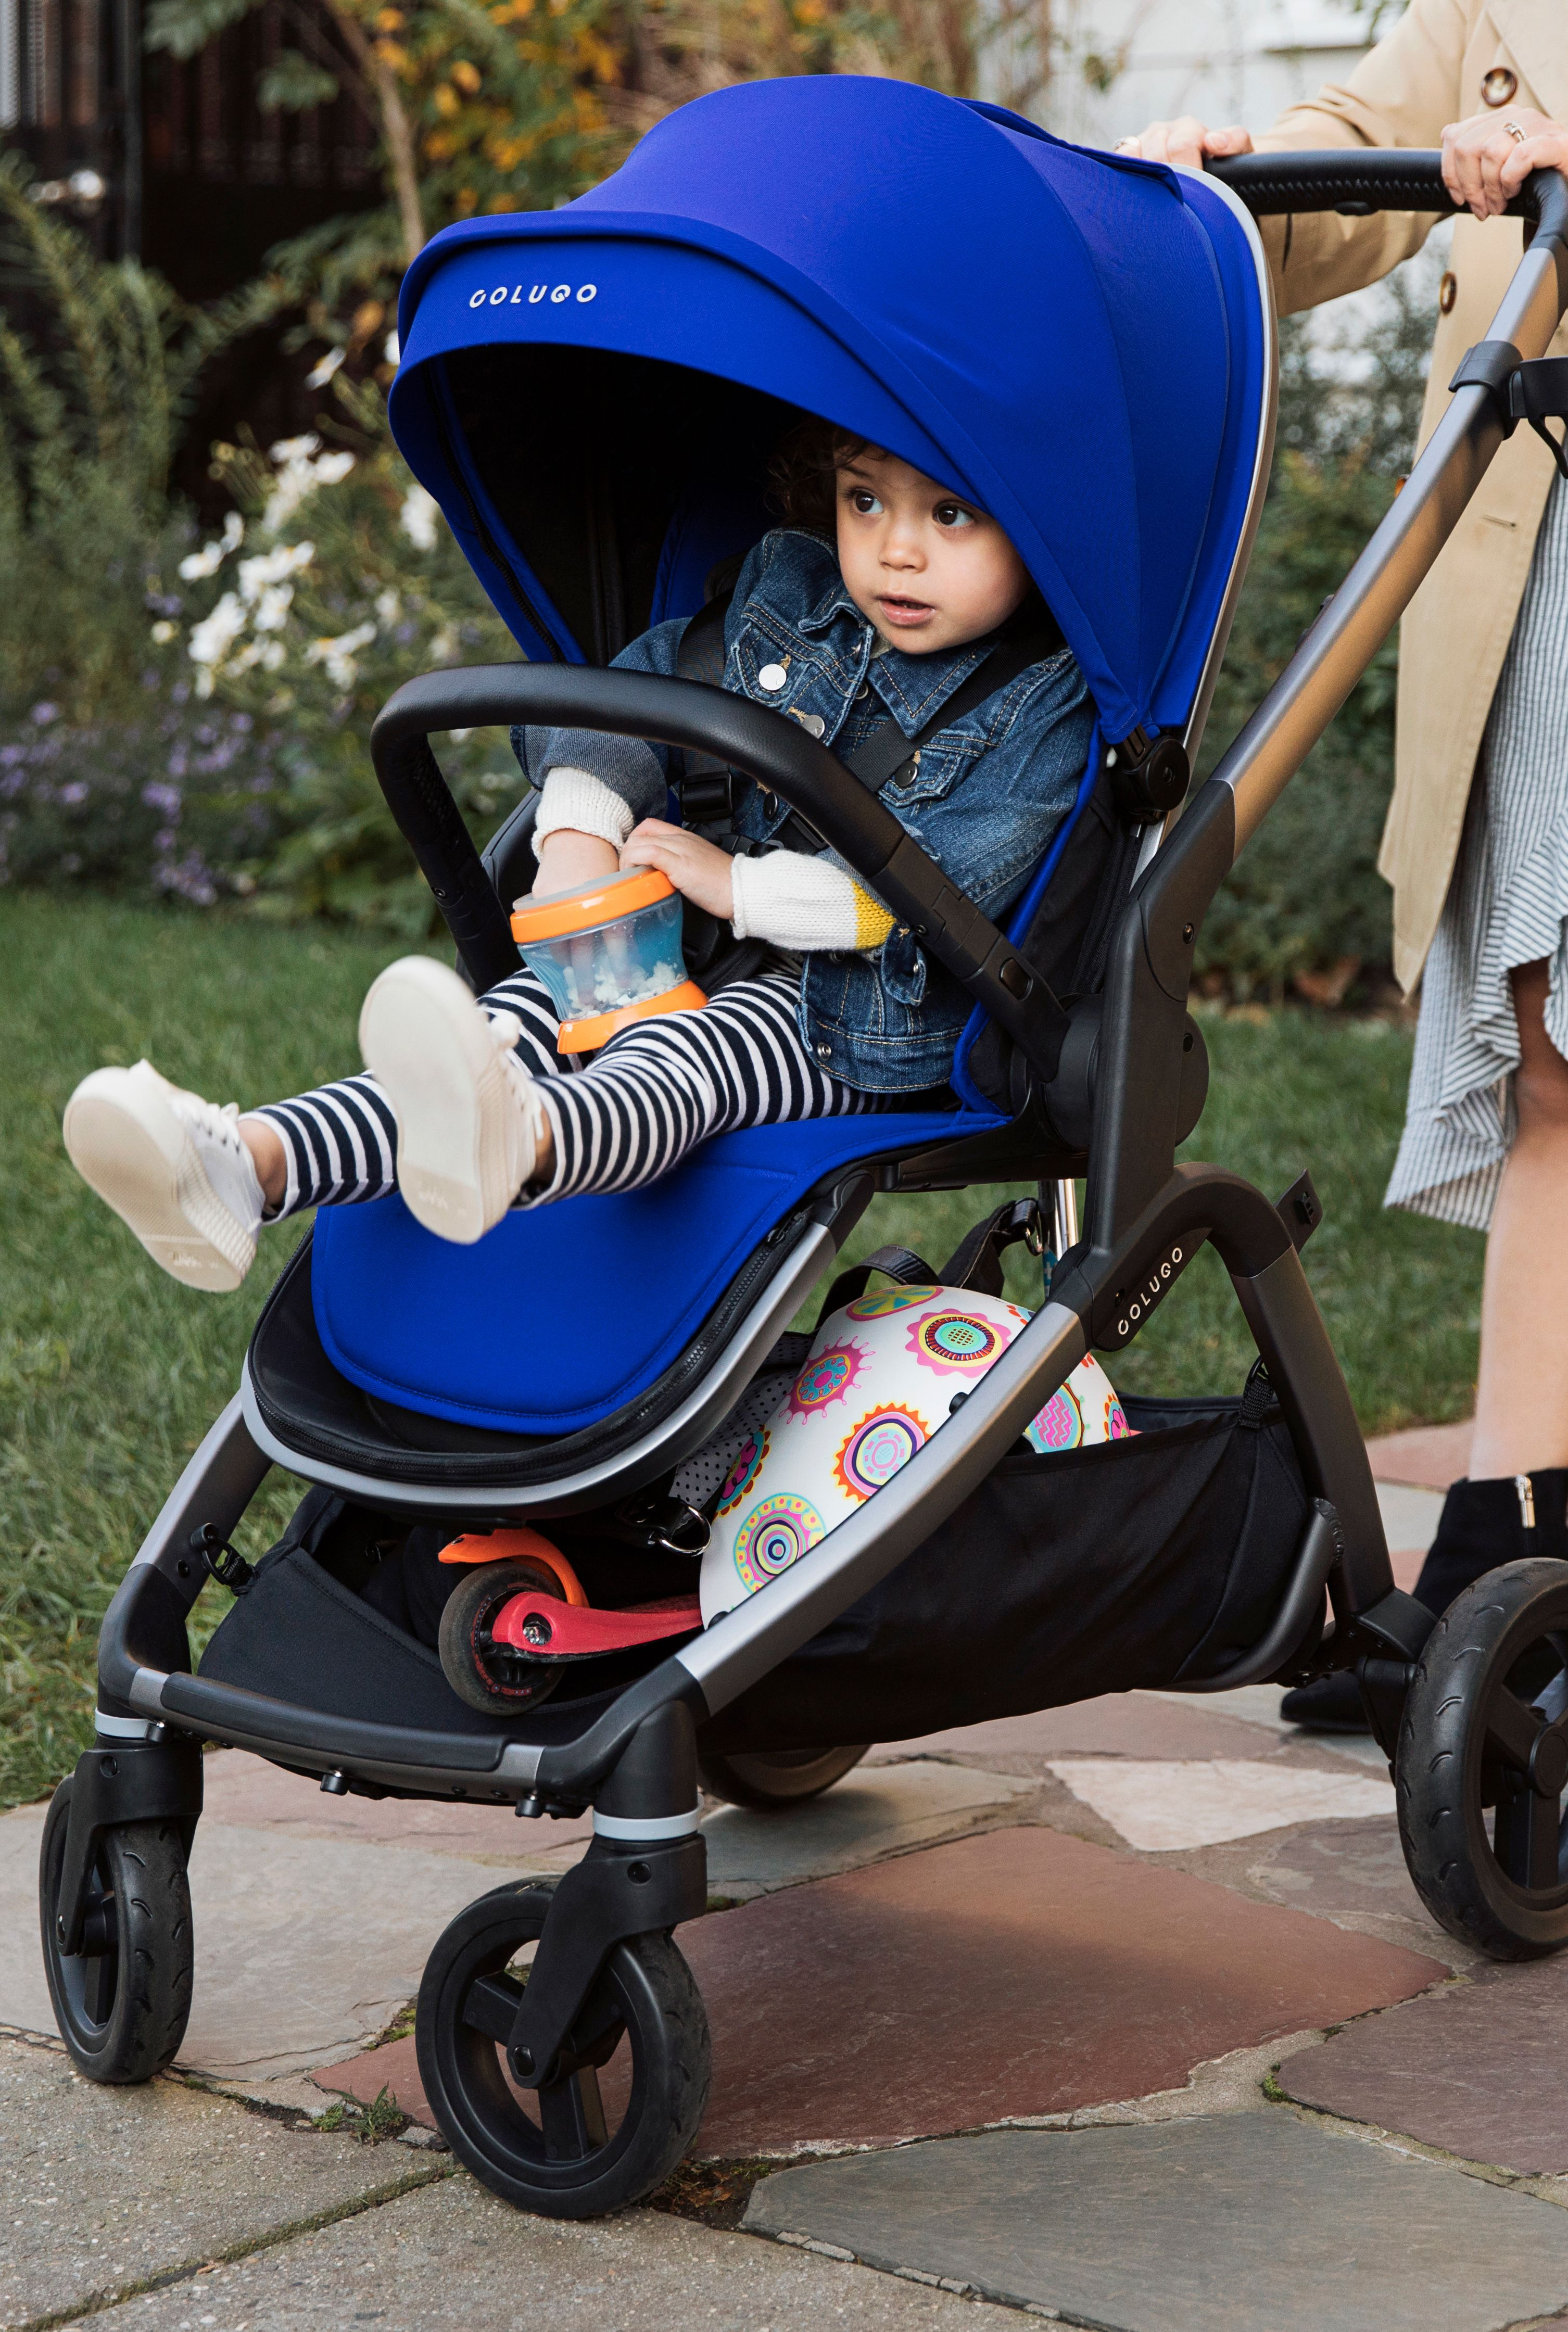 The Complete Stroller Deep Blue Baby shop, Cool baby